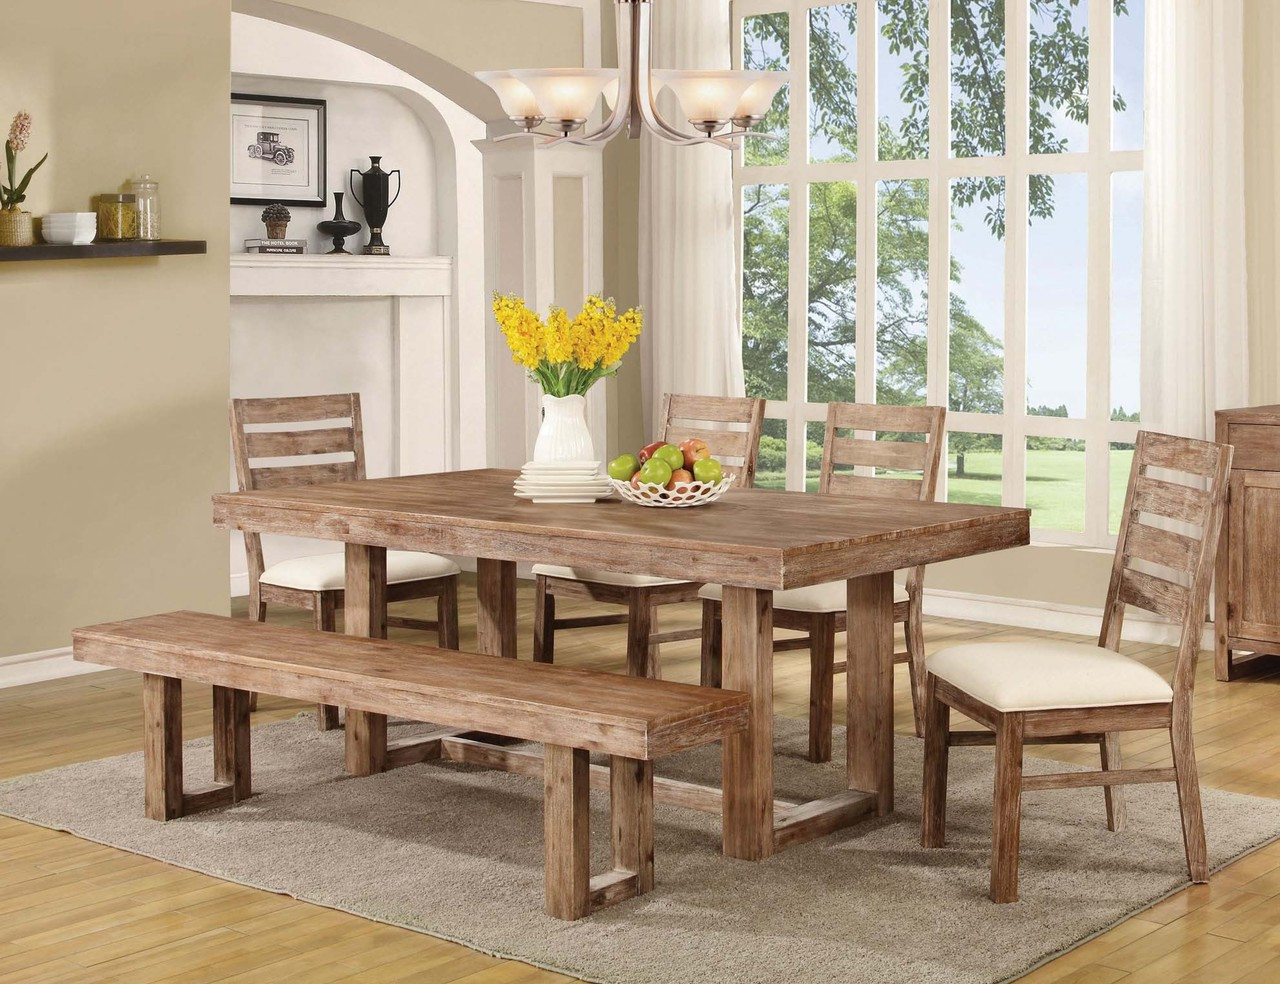 Grainger Weathered 6 Pc Dining Set - CB Furniture on granite dining table with bench, kitchen bench style tables, pub table with bench, kitchen dinette sets, kitchen table bench booth, kitchen table set rustic, kitchen bench set furniture, kitchen chairs with bench, small dining table with bench, kitchen table plans, kitchen bench table seat set, oval table set with bench, kitchen corner bench, drop leaf table with bench, kitchen table and chairs sets,